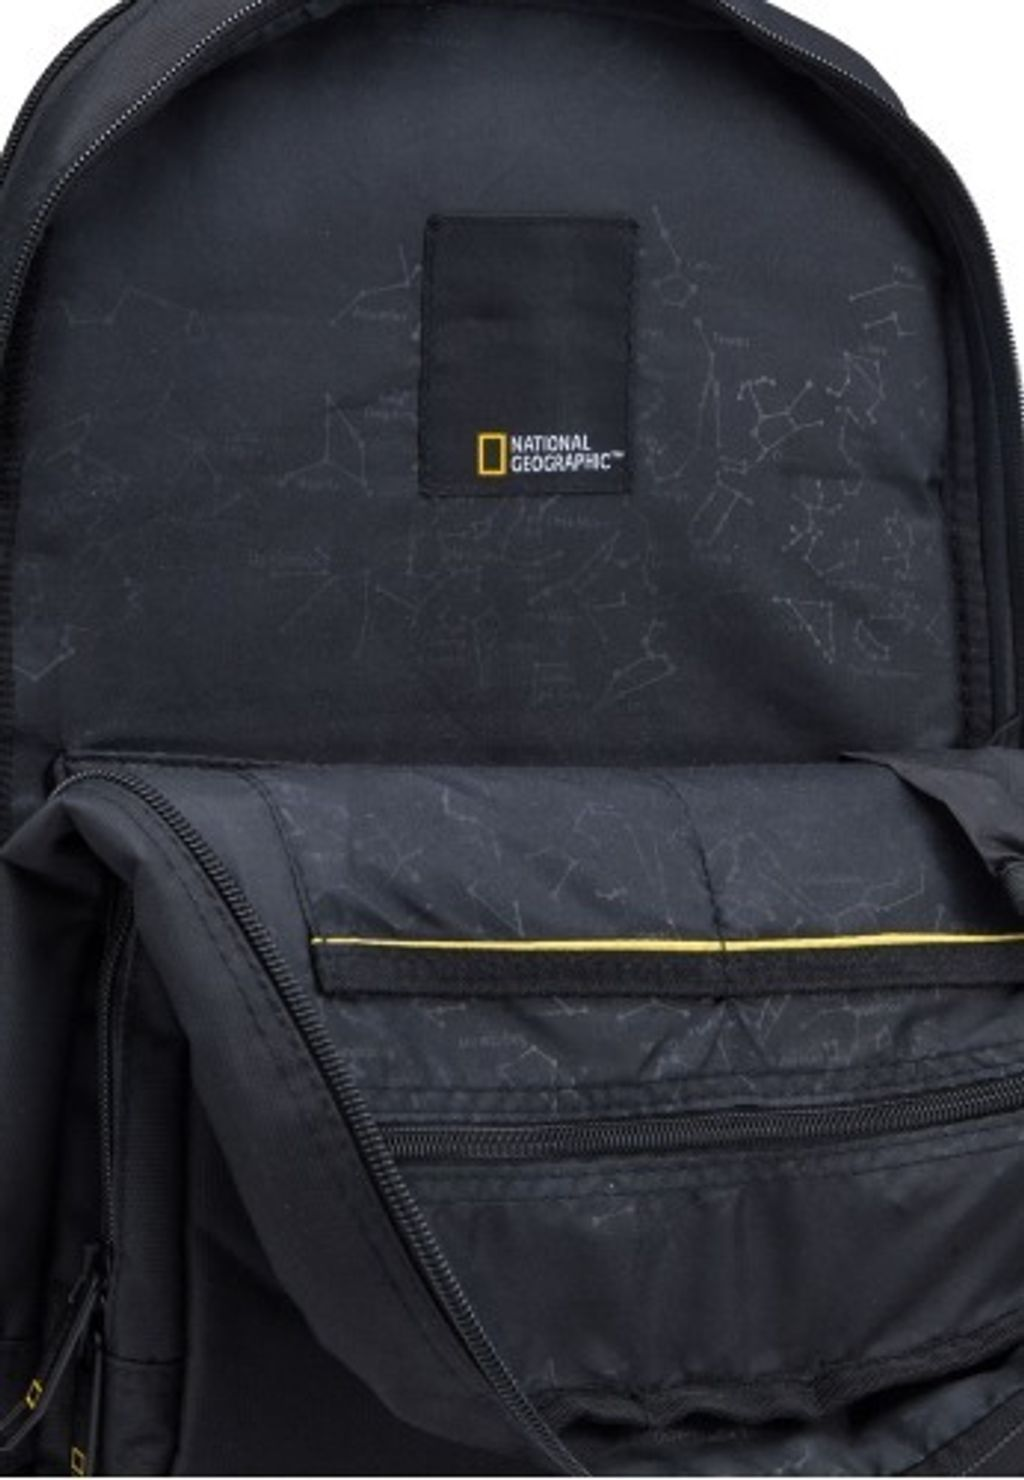 national-geographic-6260-445452-5-product.jpg